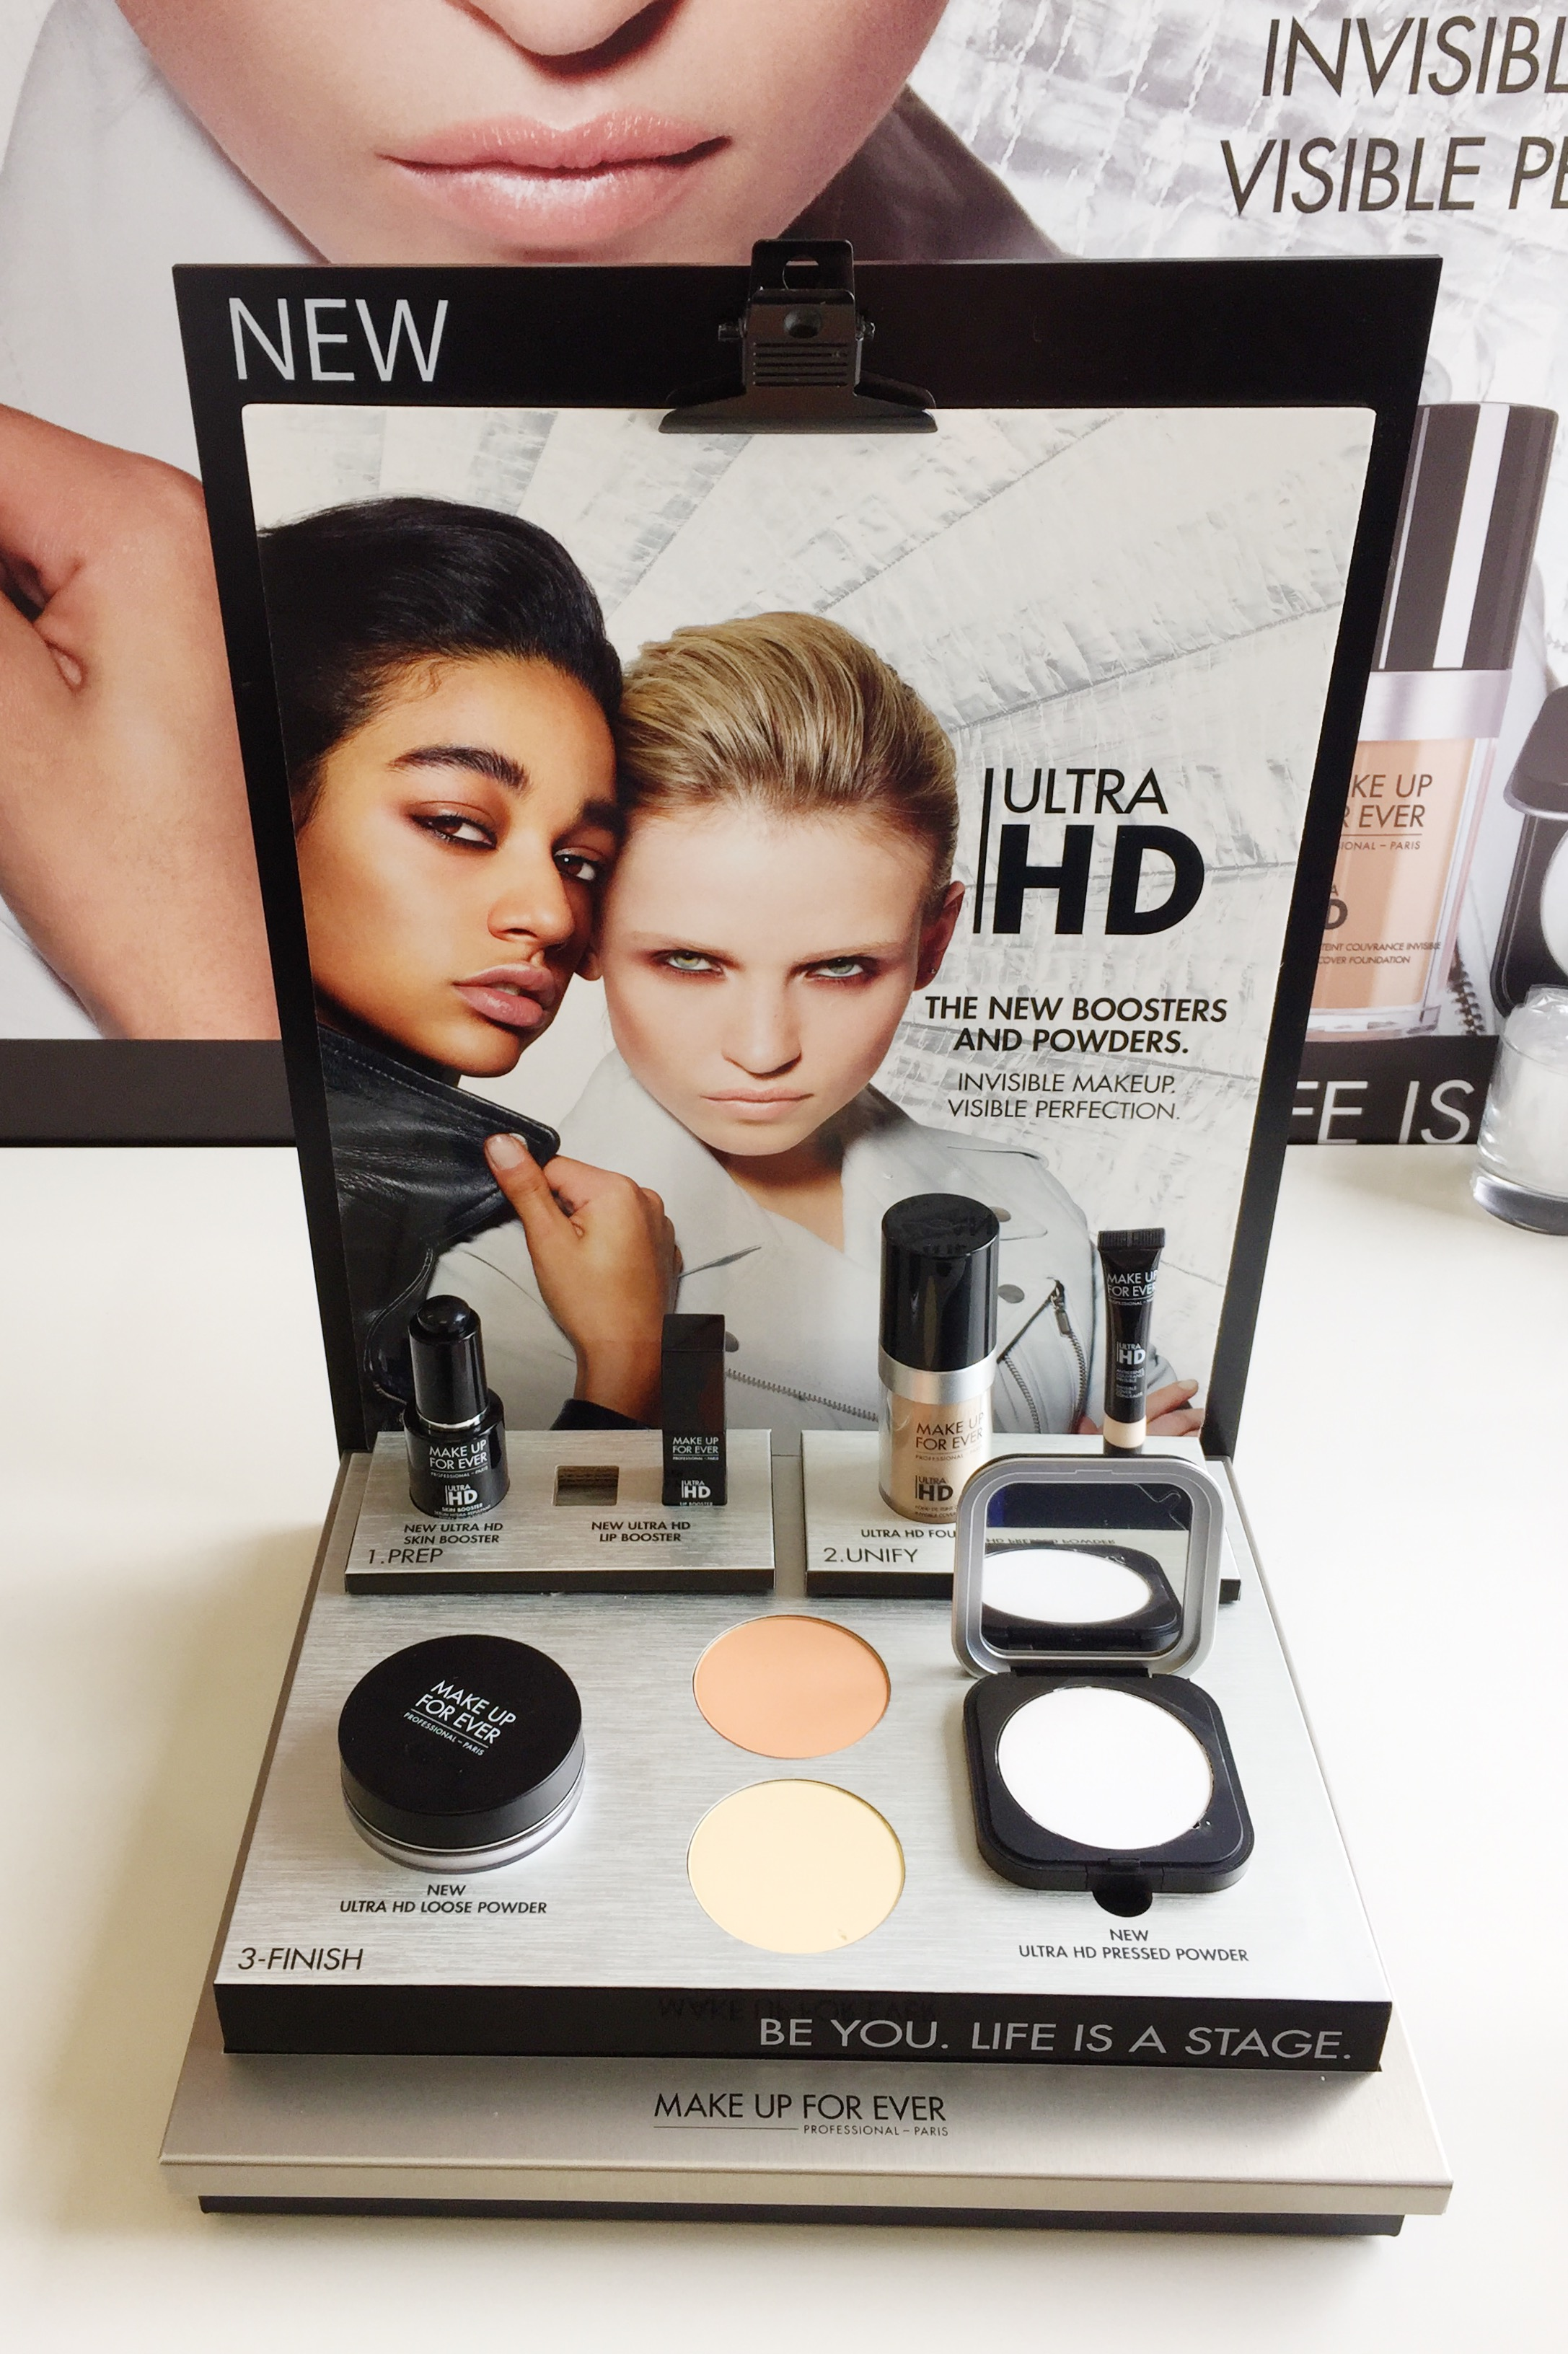 Marisa Robinson Beauty Blogger Sephora Exclusive Brands Showcase 2017 Make Up For Ever